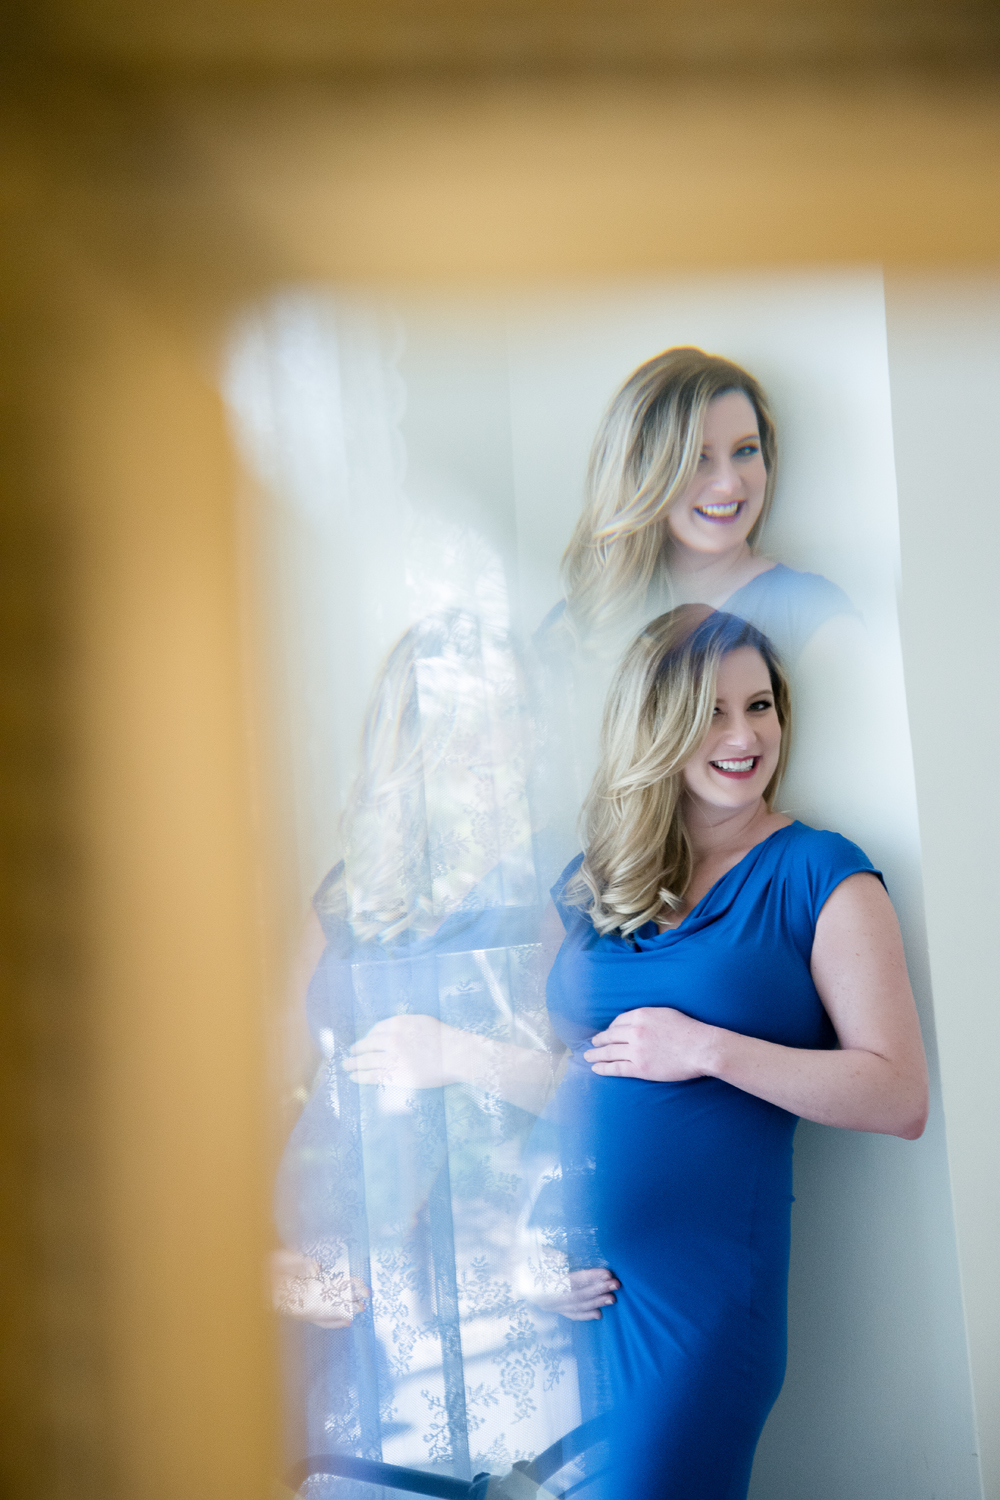 Maternity-Boudoir-Baby-Bump-in-Mirror.jpg